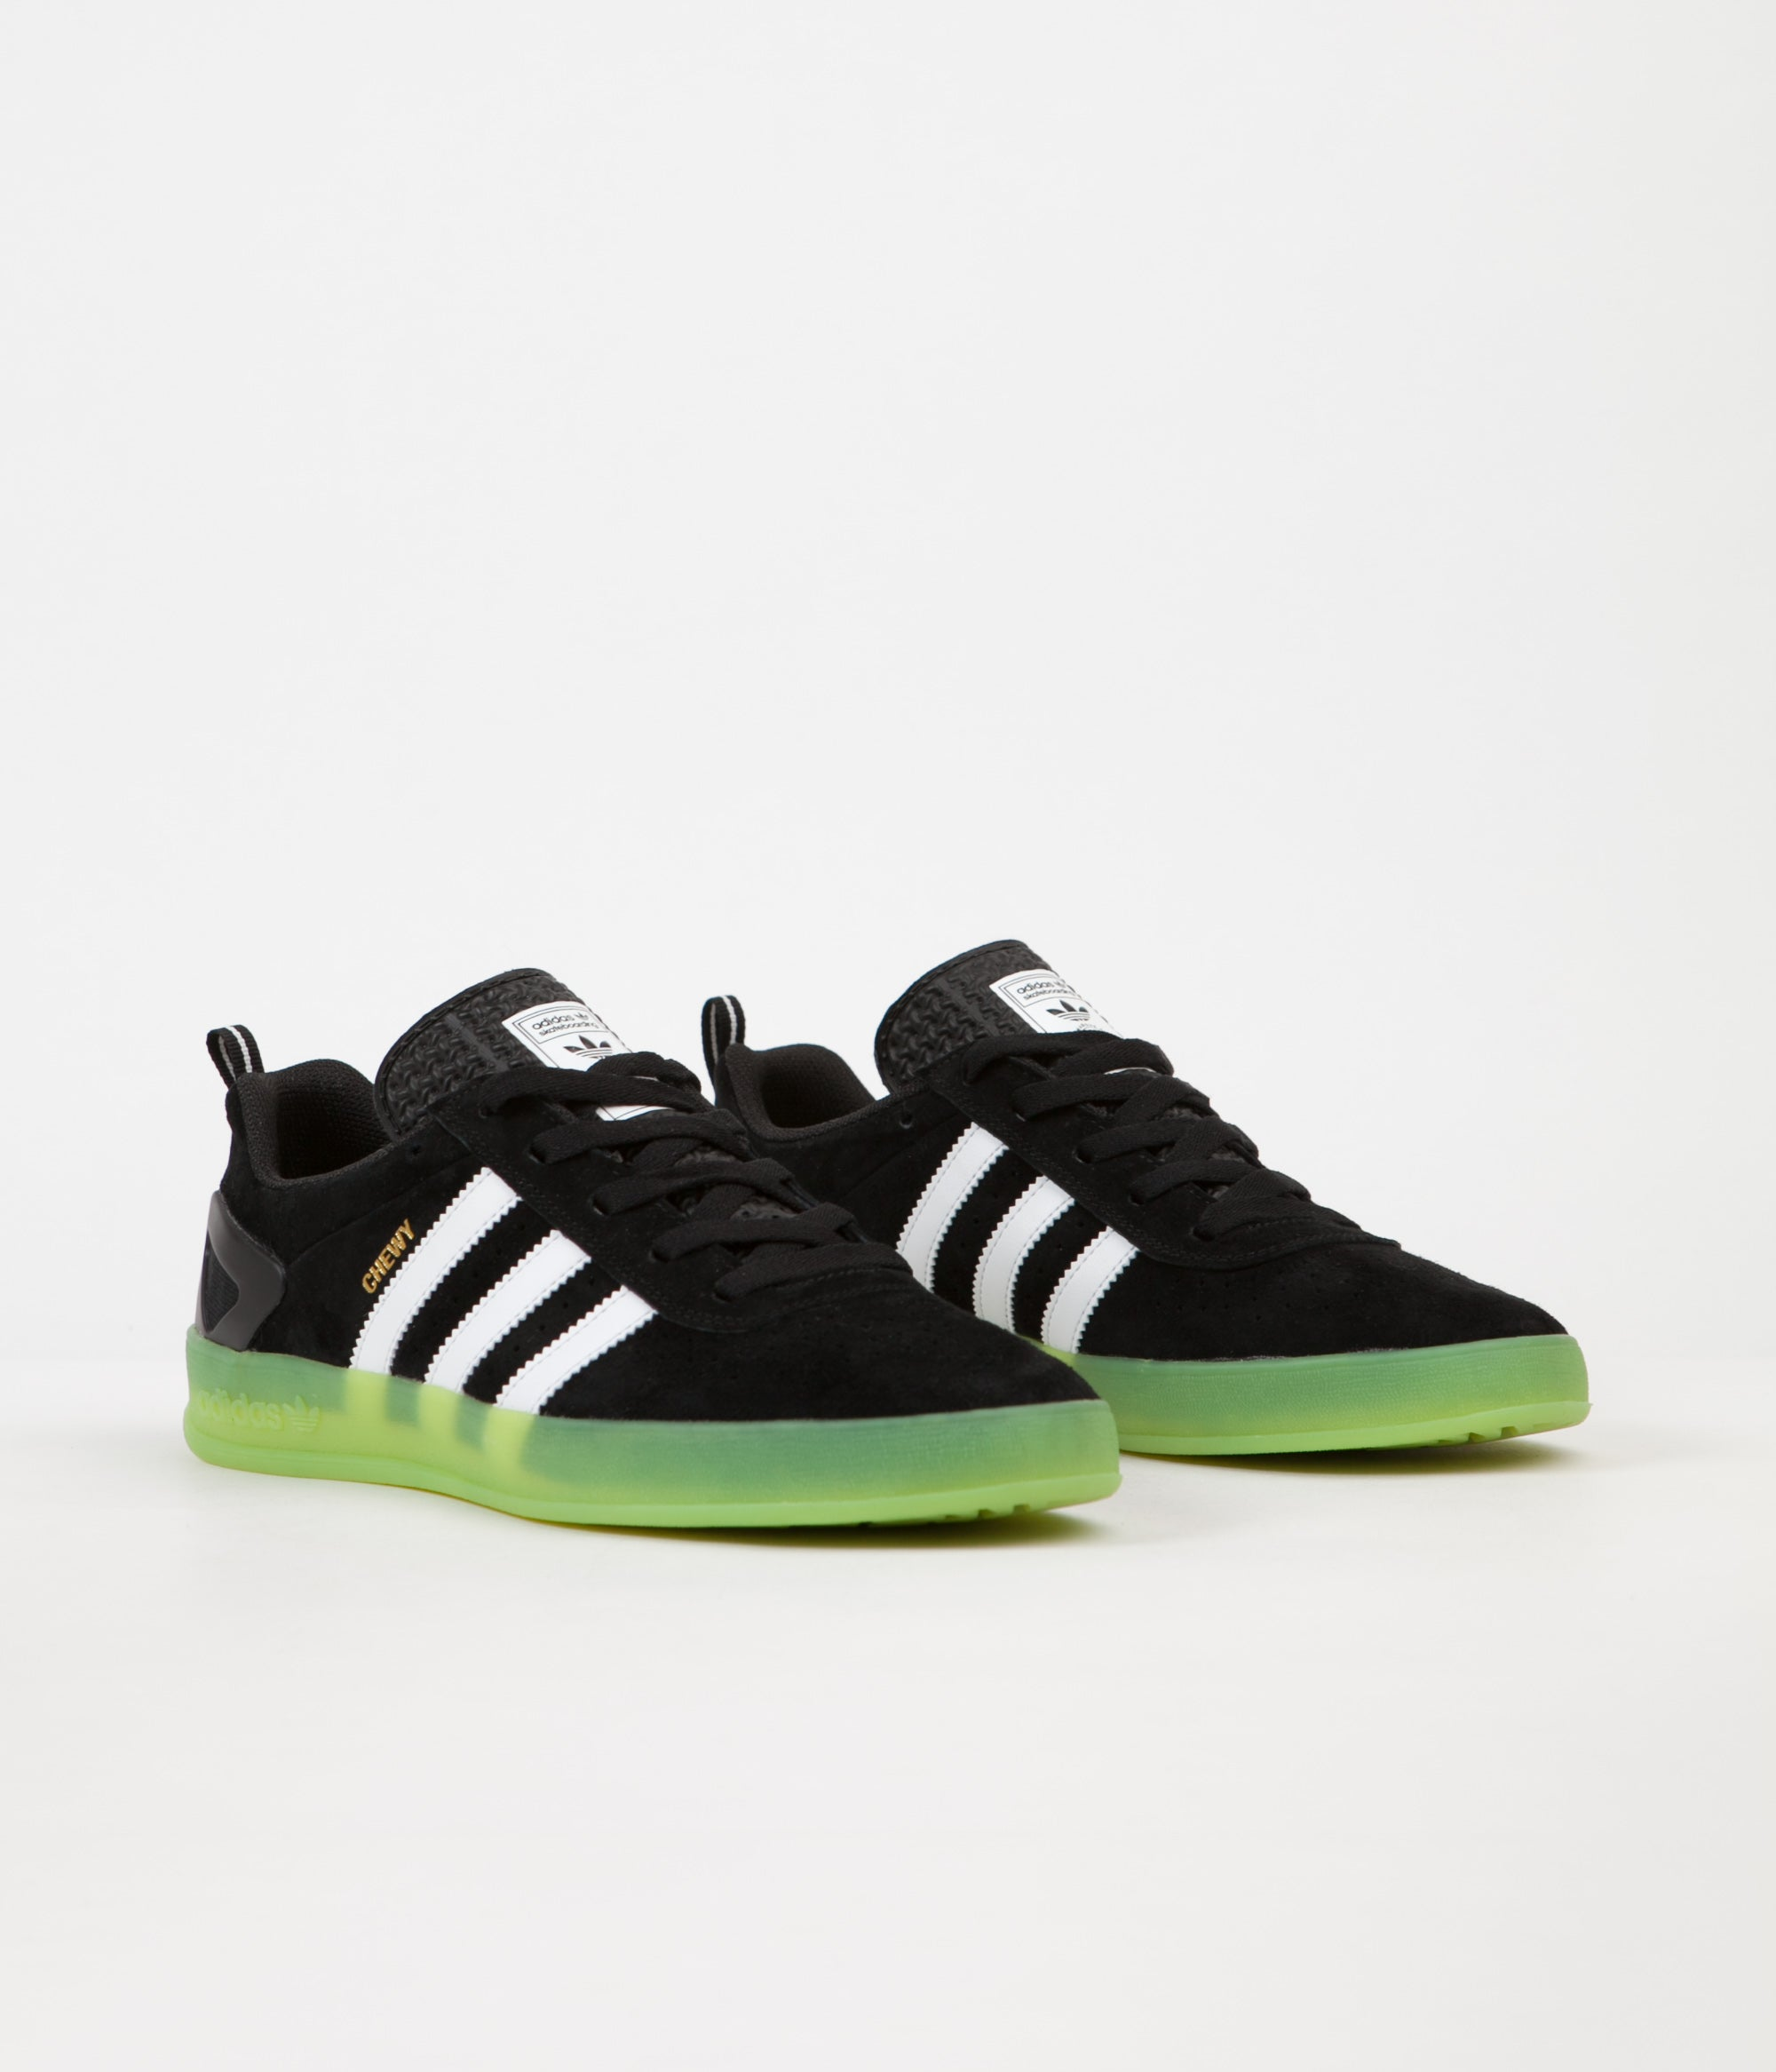 2ed82561952a Adidas x Palace Pro  Chewy  Shoes - Black   White   Green